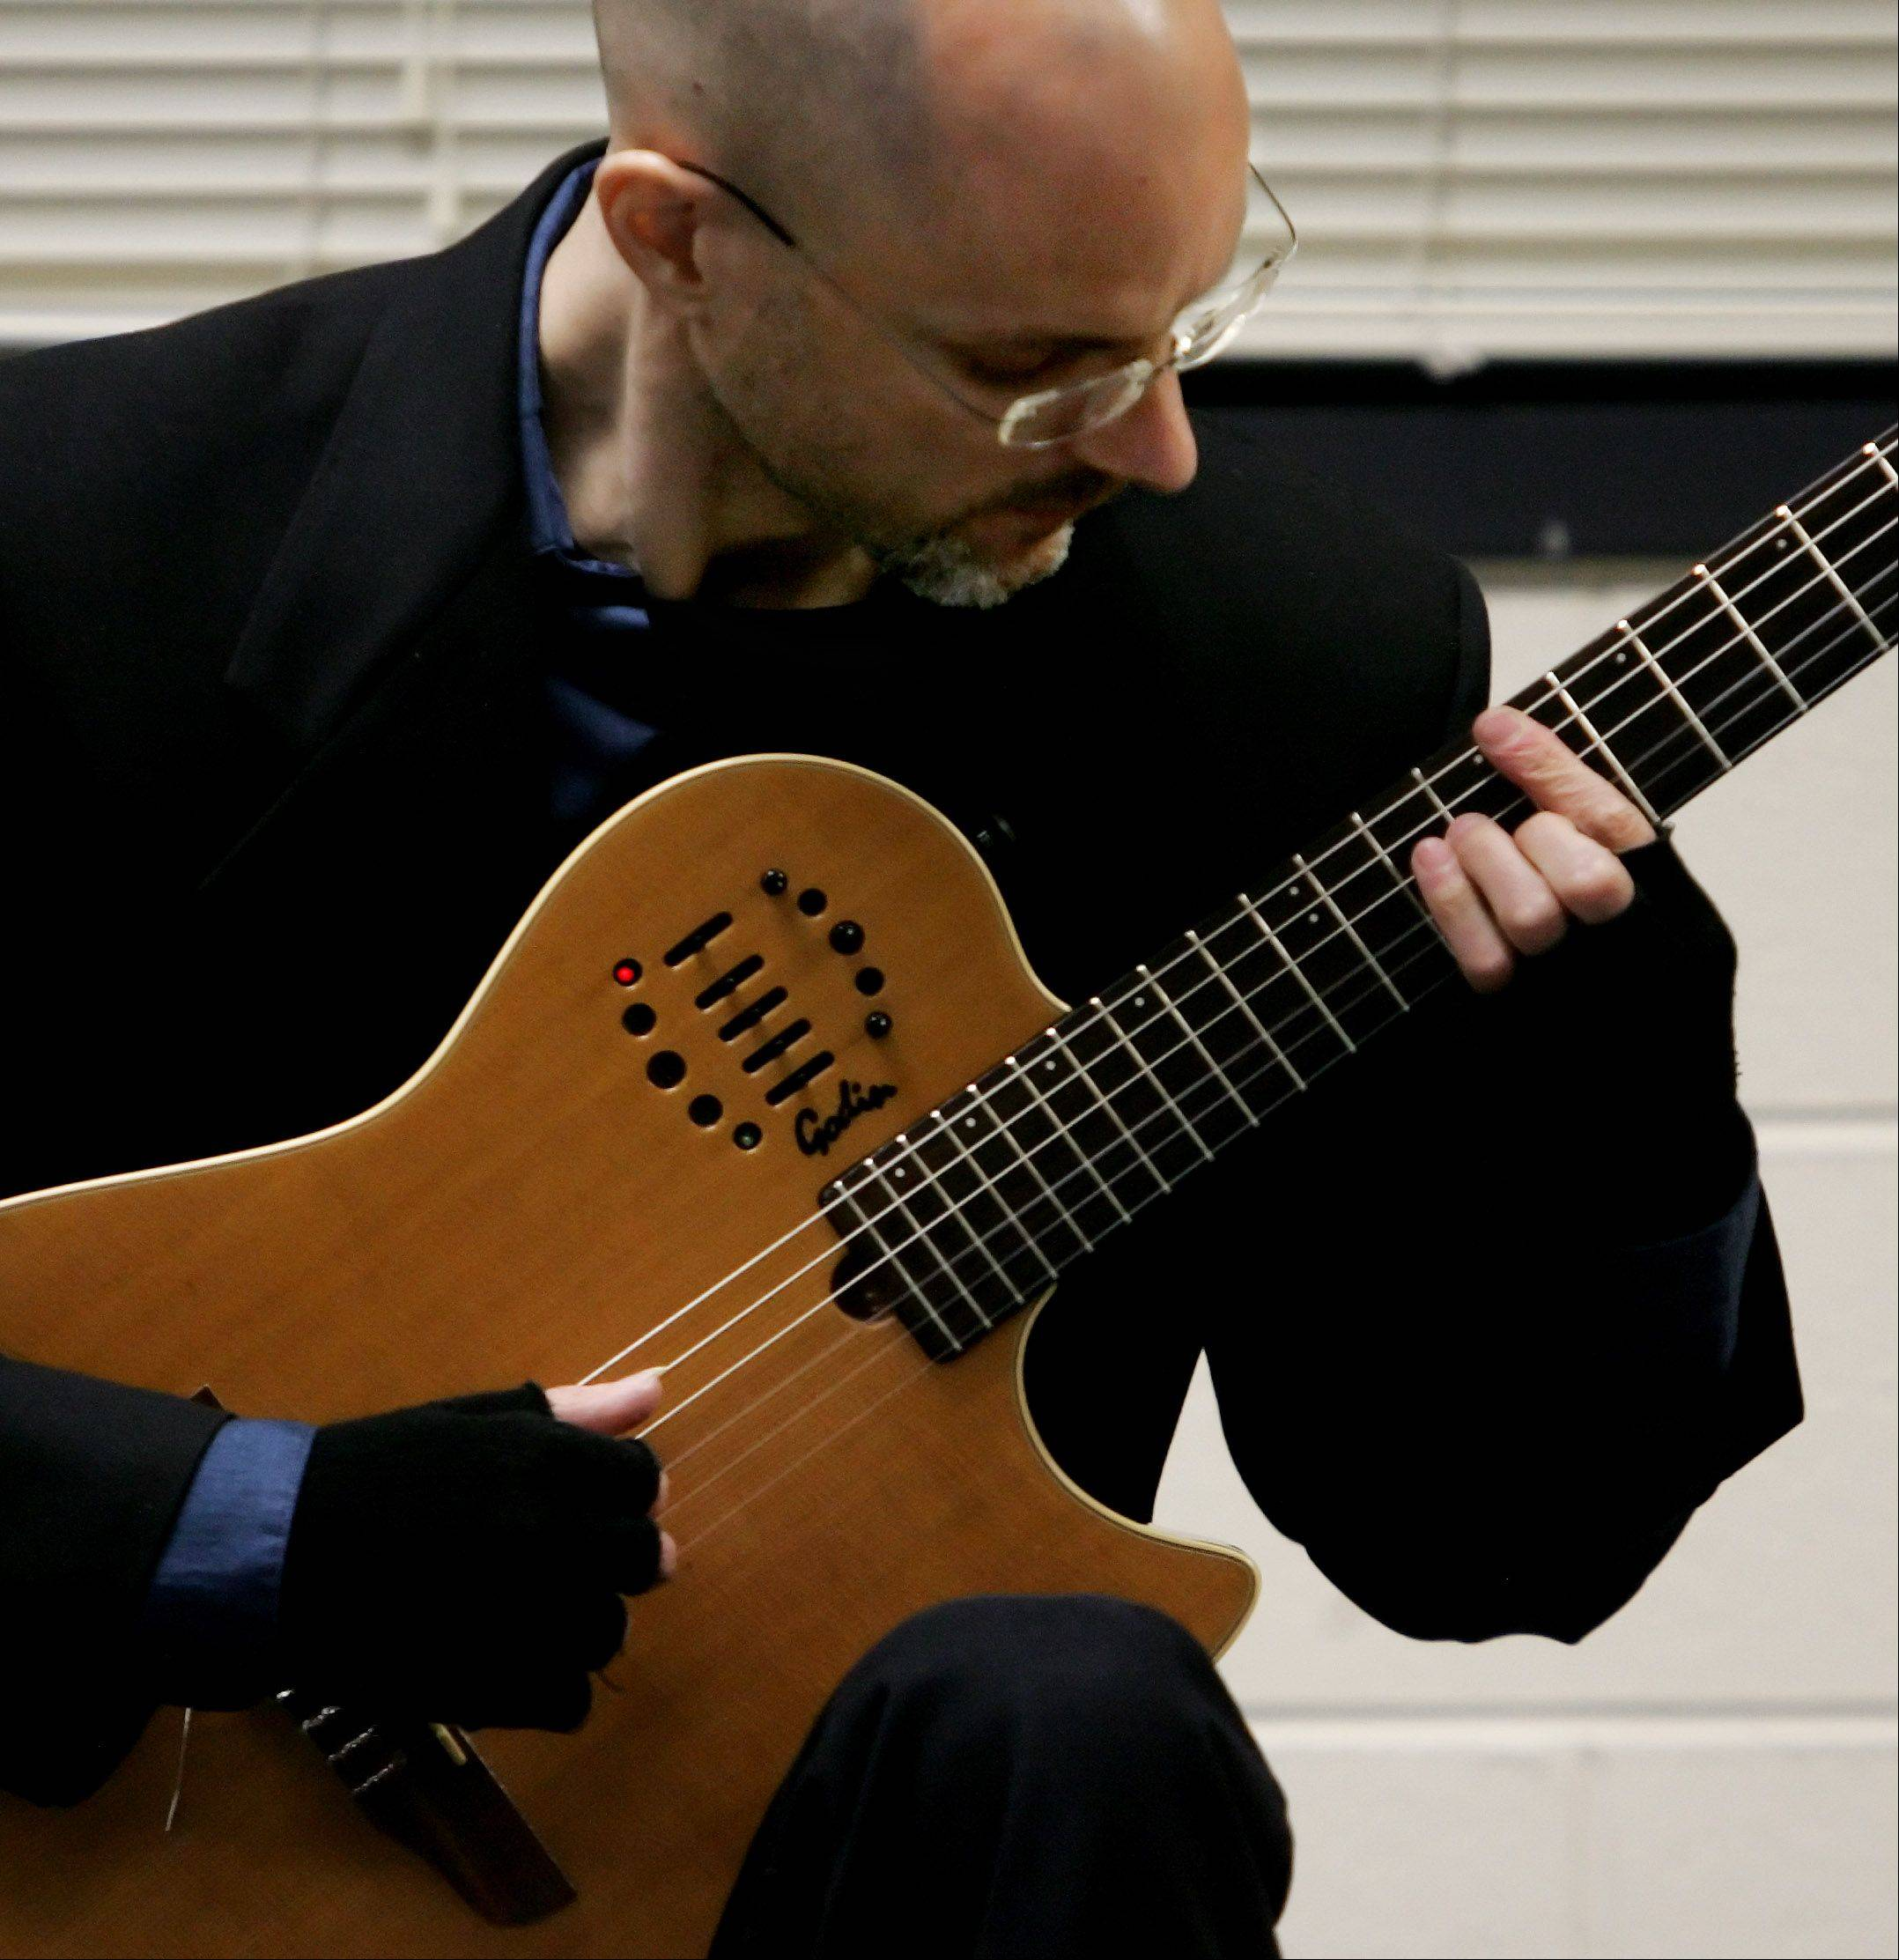 Guitarist Joseph Loban performs in the Flamenco Guitar class during the Odyssey Fine Arts Festival at Stevenson High School in Lincolnshire. The two-day event brings in writers, performers and artists to broaden the exposure of the arts for students.